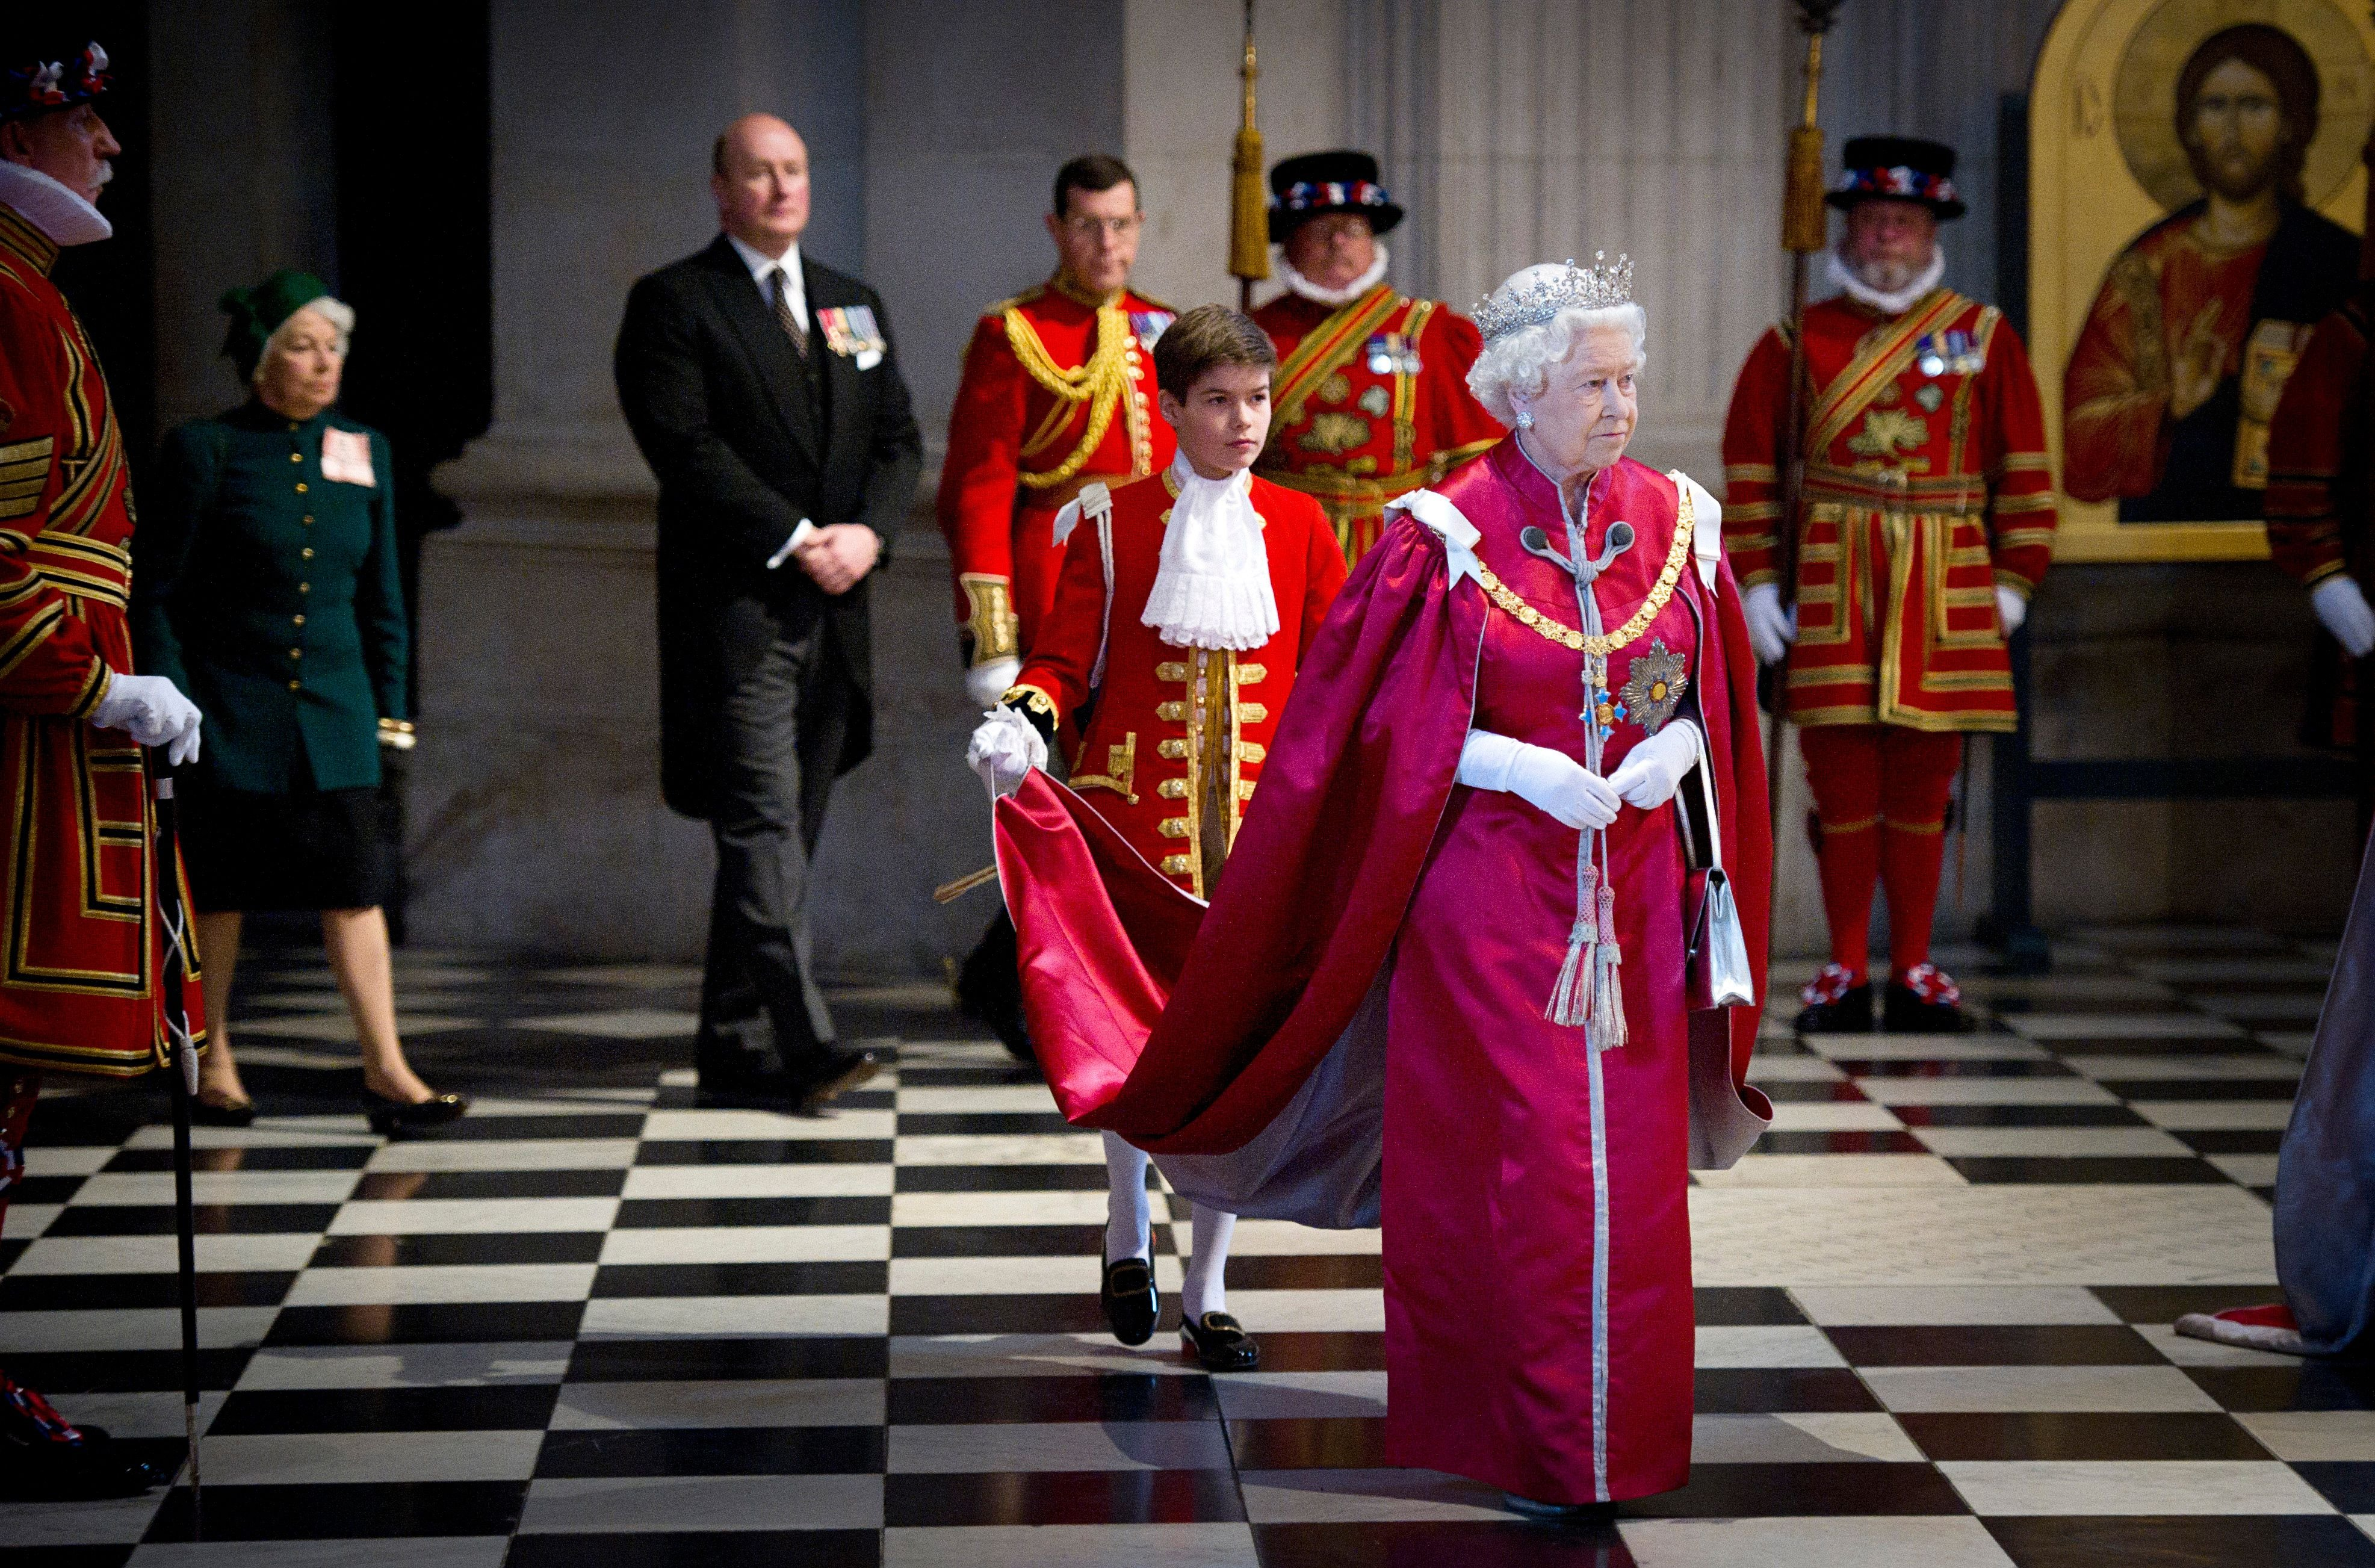 Queen Elizabeth II at a service for the Order of the British Empire at St Paul's Cathedral in 2012 in London, England | Source: Getty Images